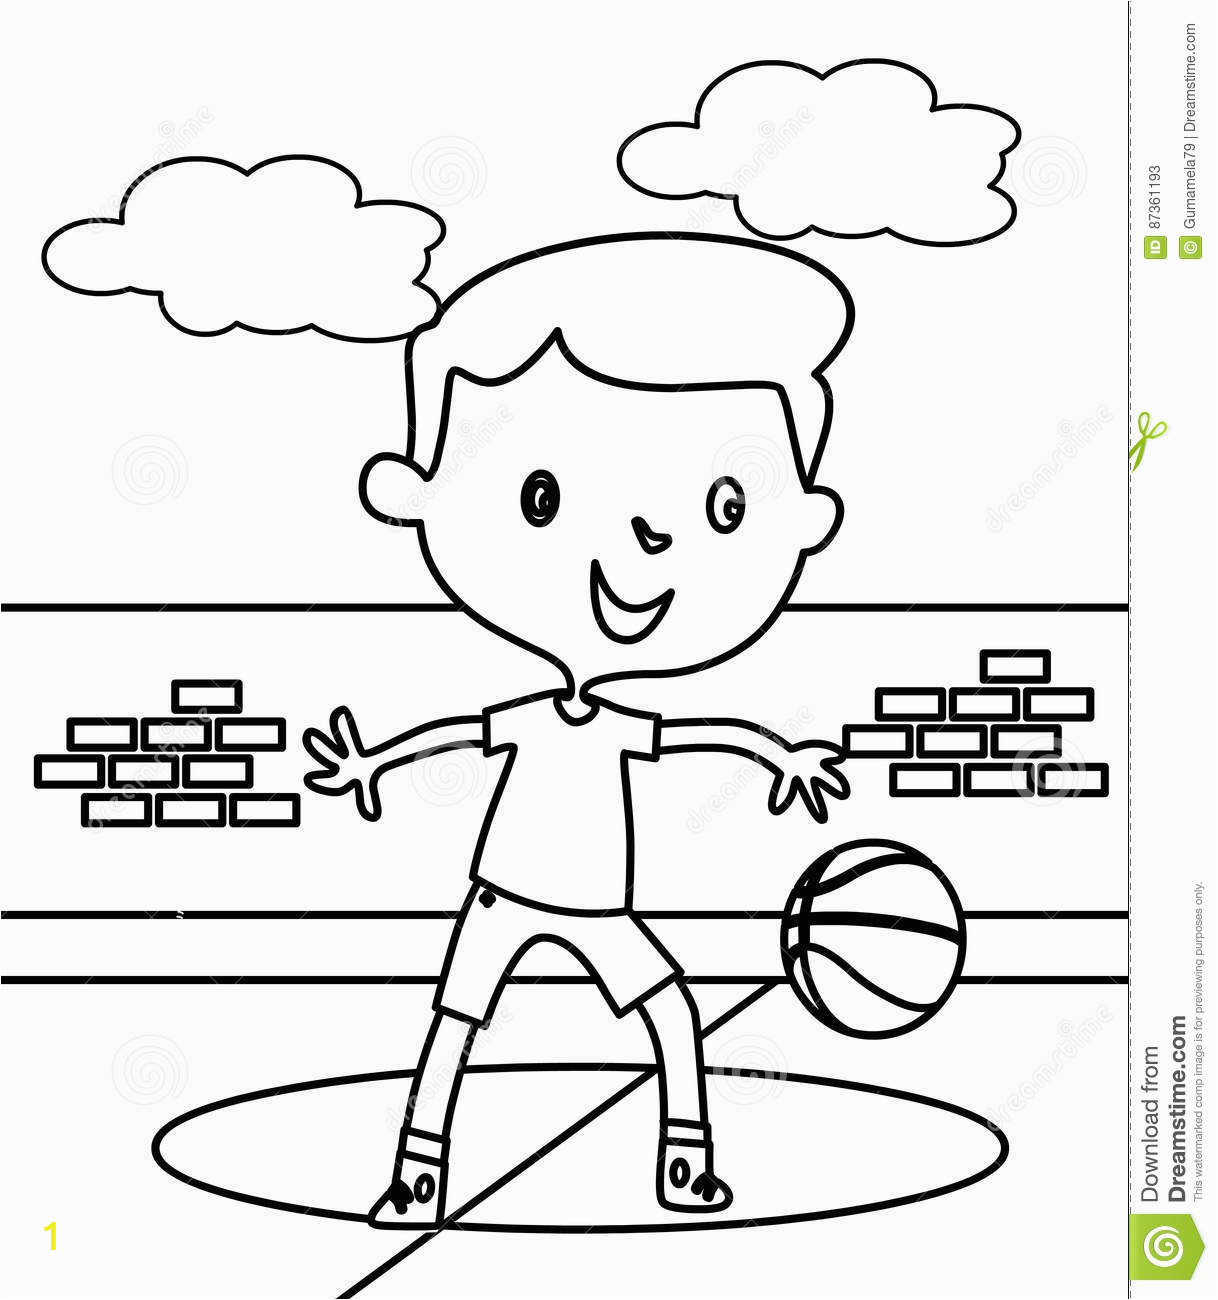 little boy playing basketball coloring page hand drawn cute kids